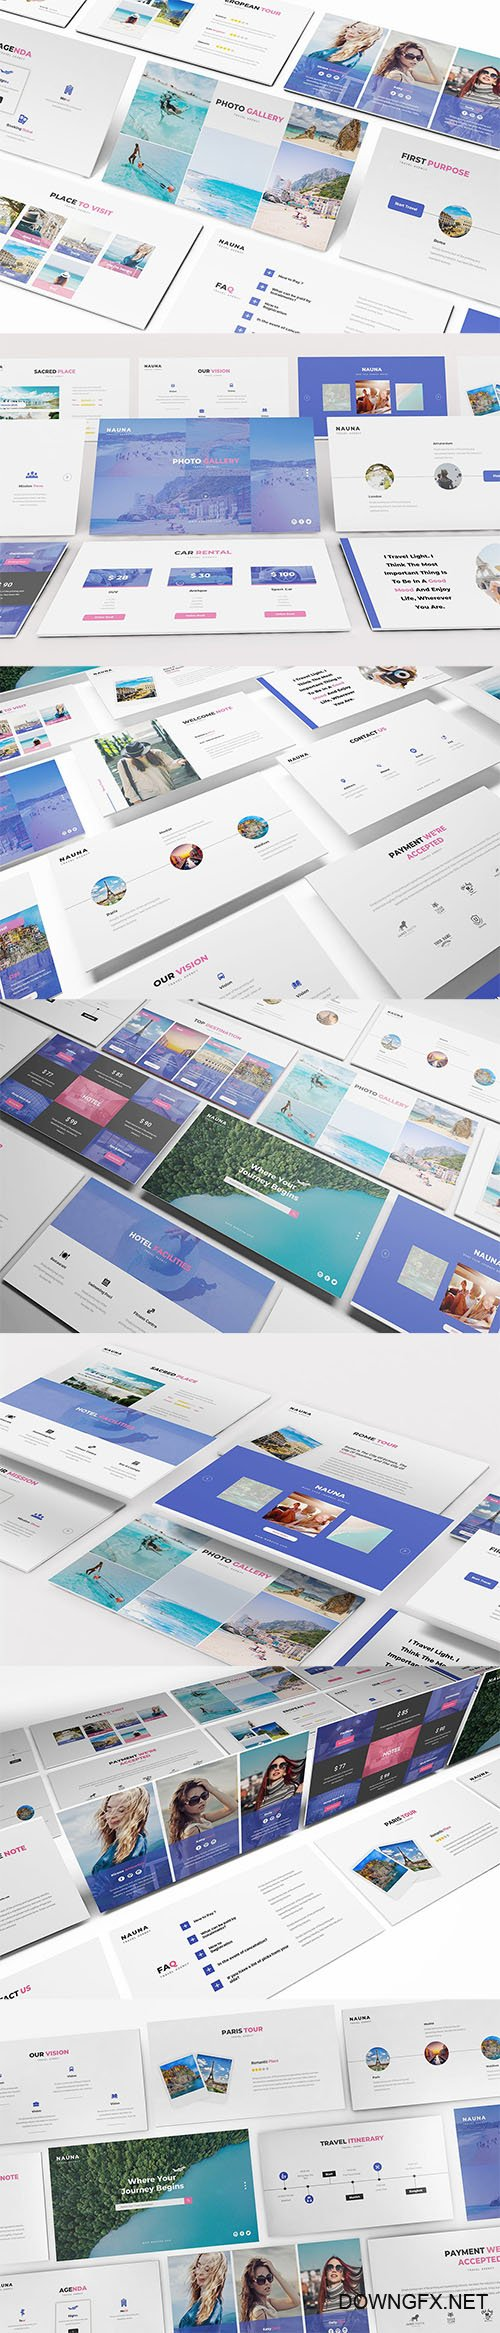 Nauna - Travel Agency Powerpoint, Keynote and Google Slides Templates